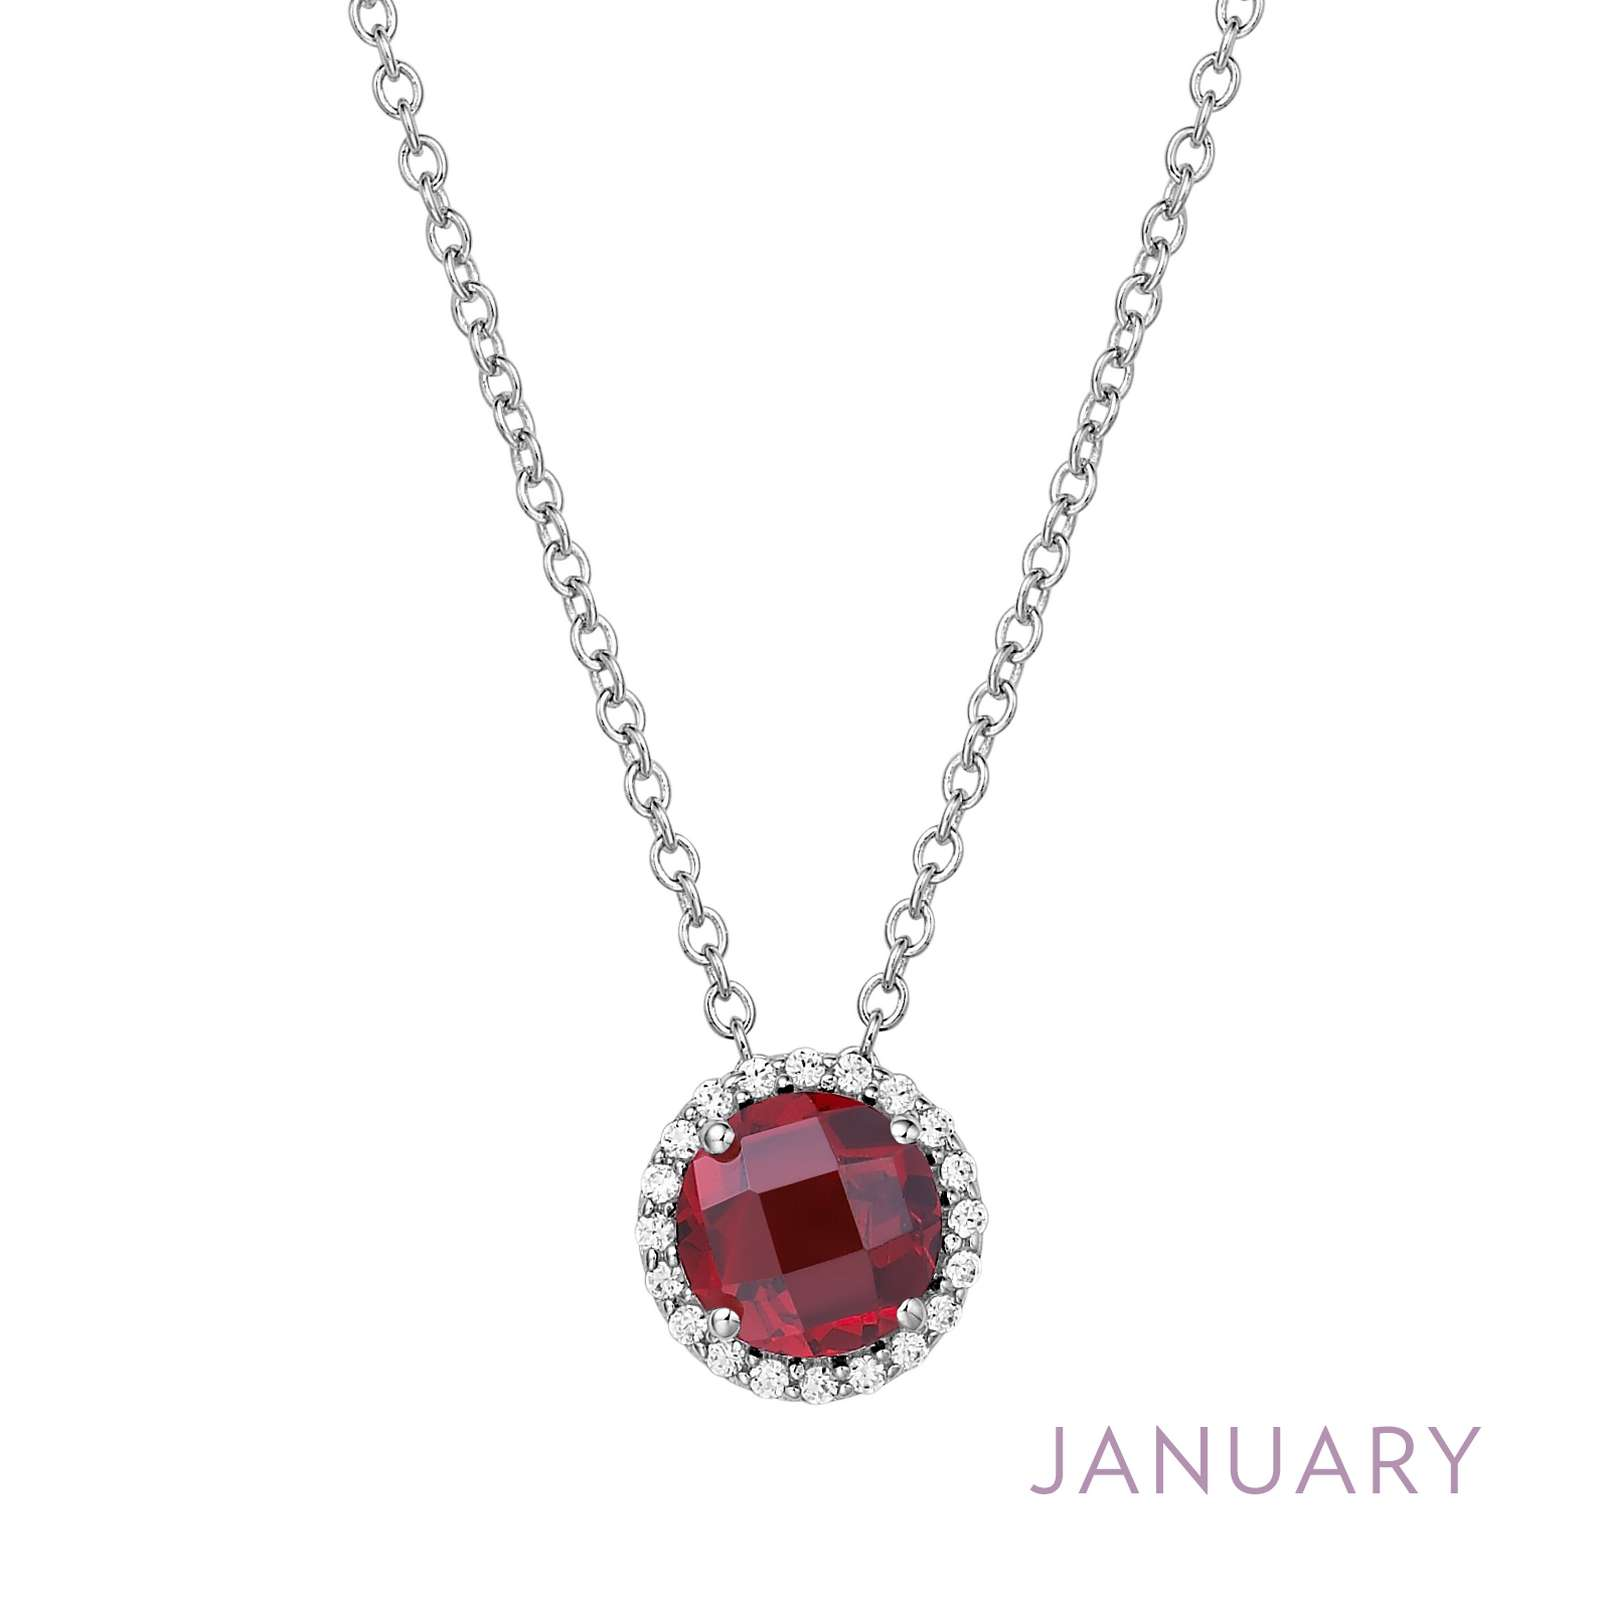 January - Garnet.  Adorn yourself with Lafonn's birthstone jewelry. The necklace is set with a genuine garnet surrounded by Lafonn's signature Lassaire simulated diamonds in sterling silver bonded with platinum.